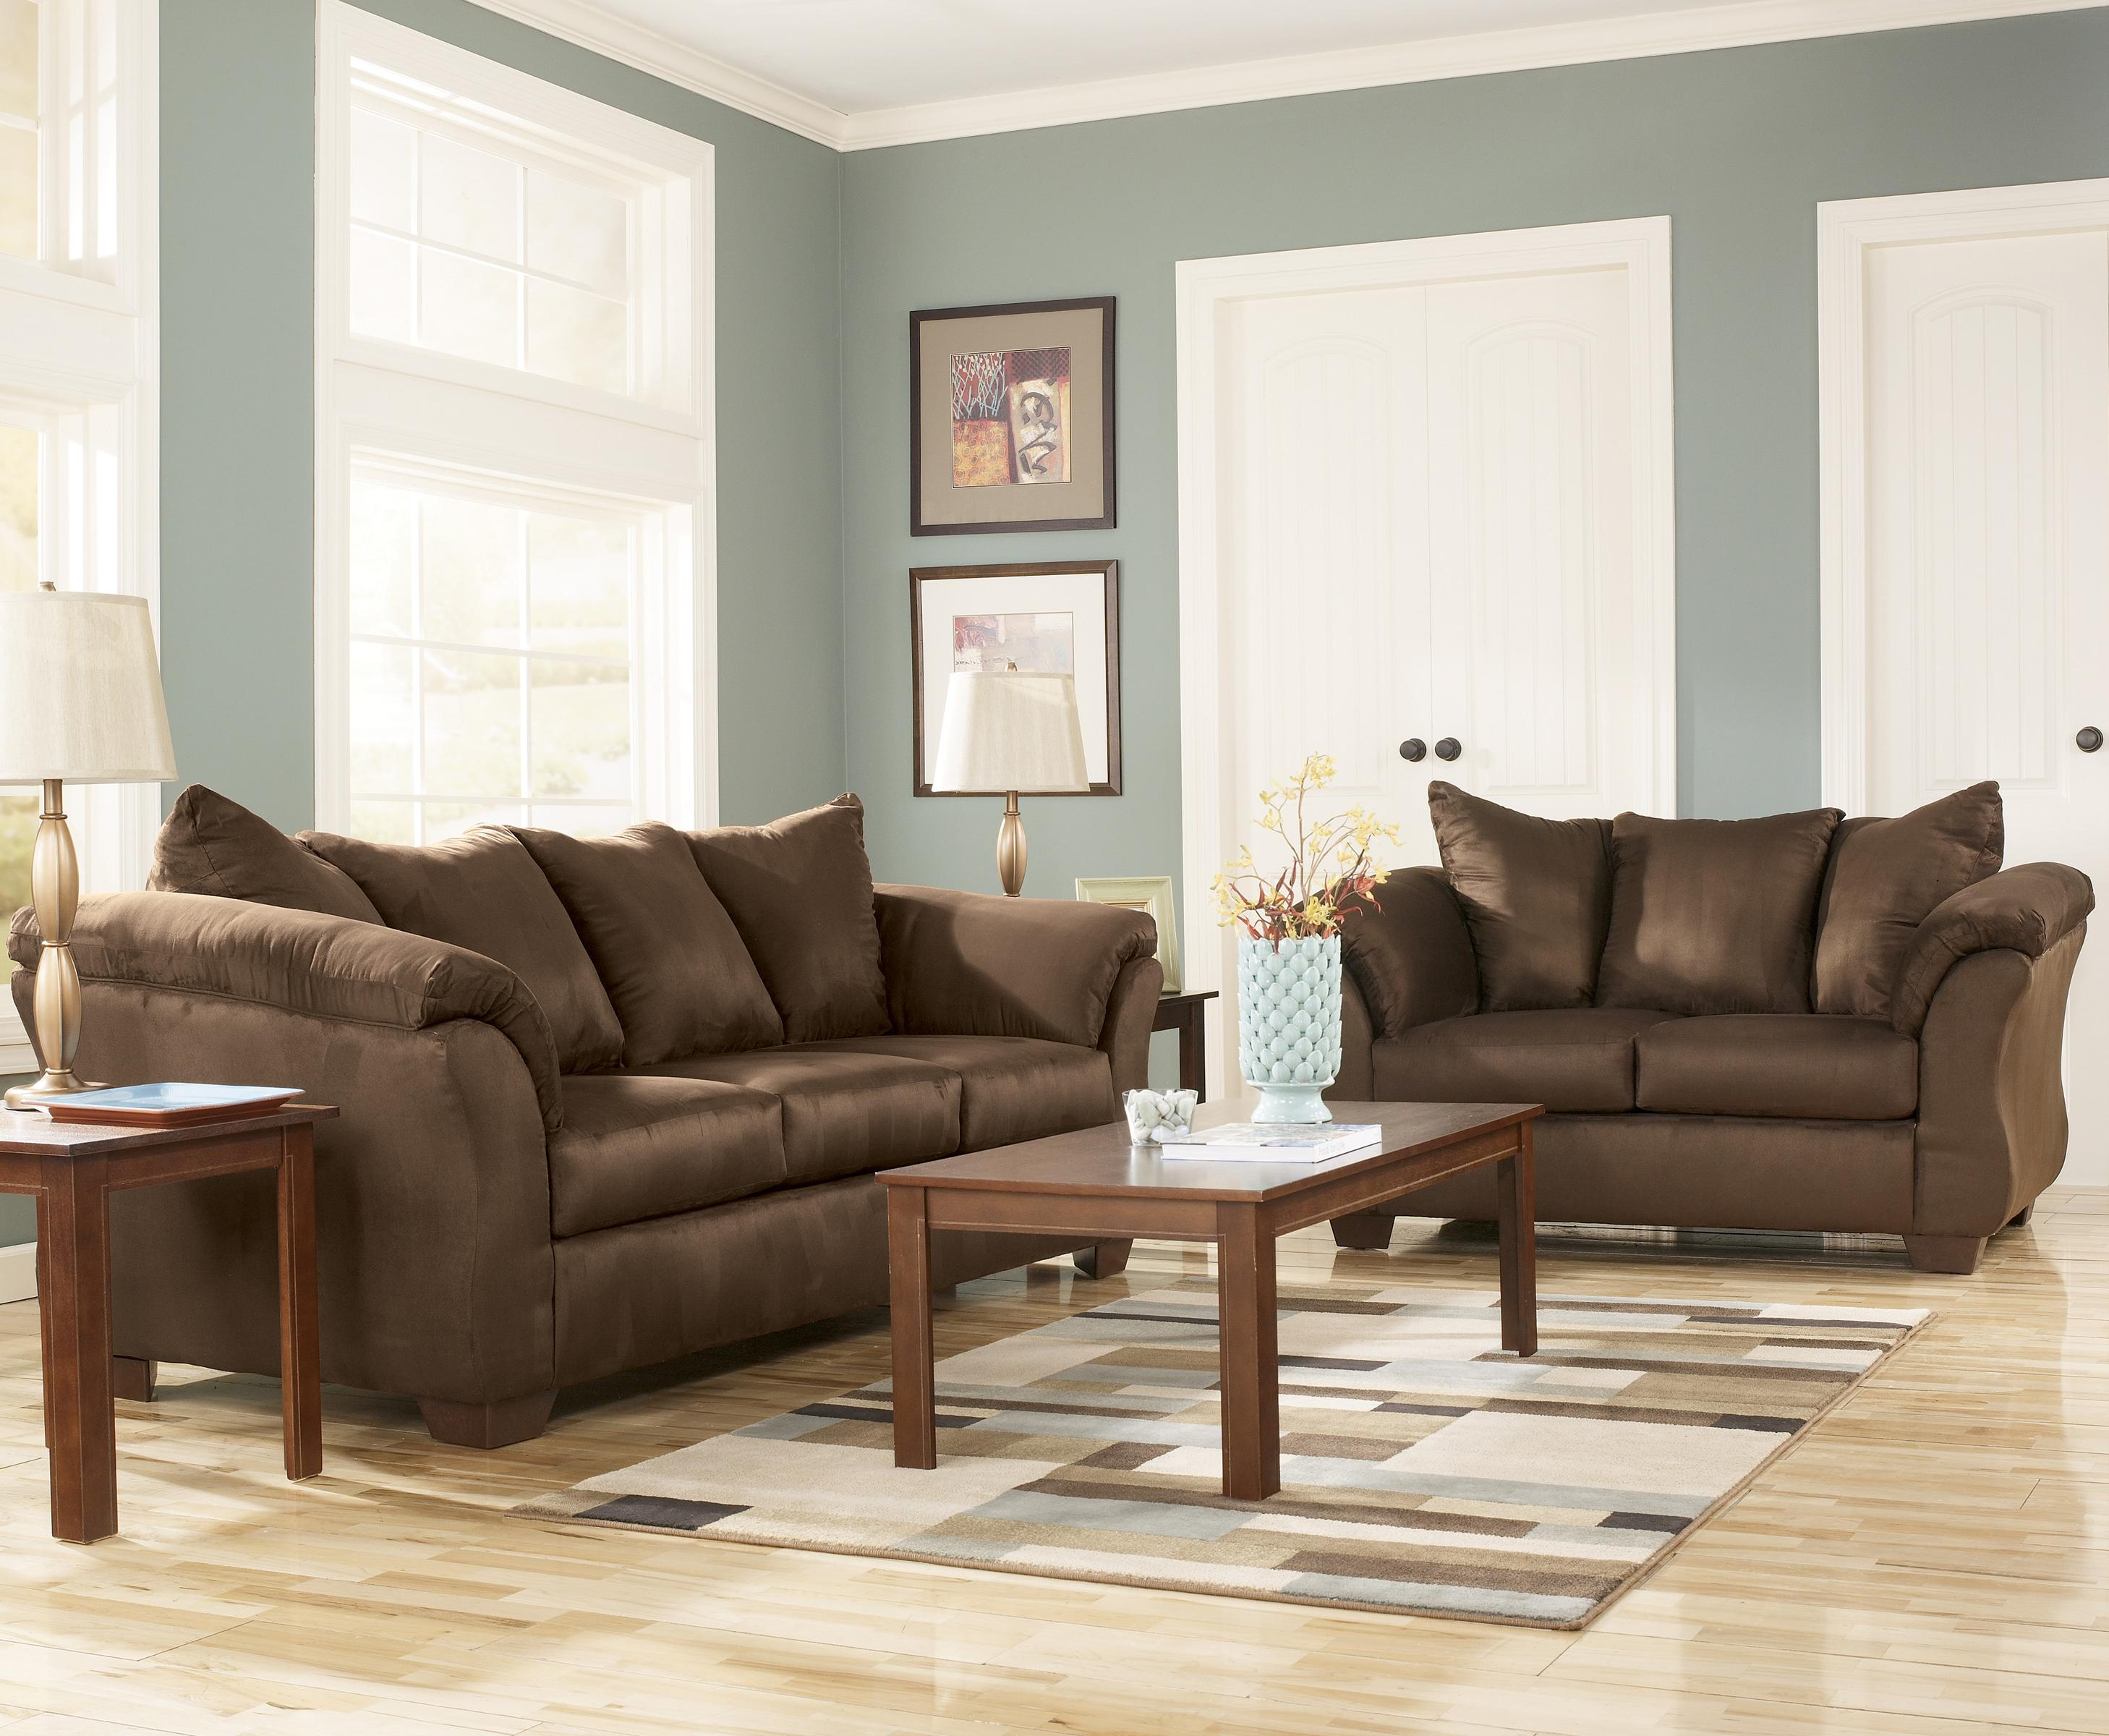 Signature Design by Ashley Darcy - Cafe Contemporary Sectional Sofa ...